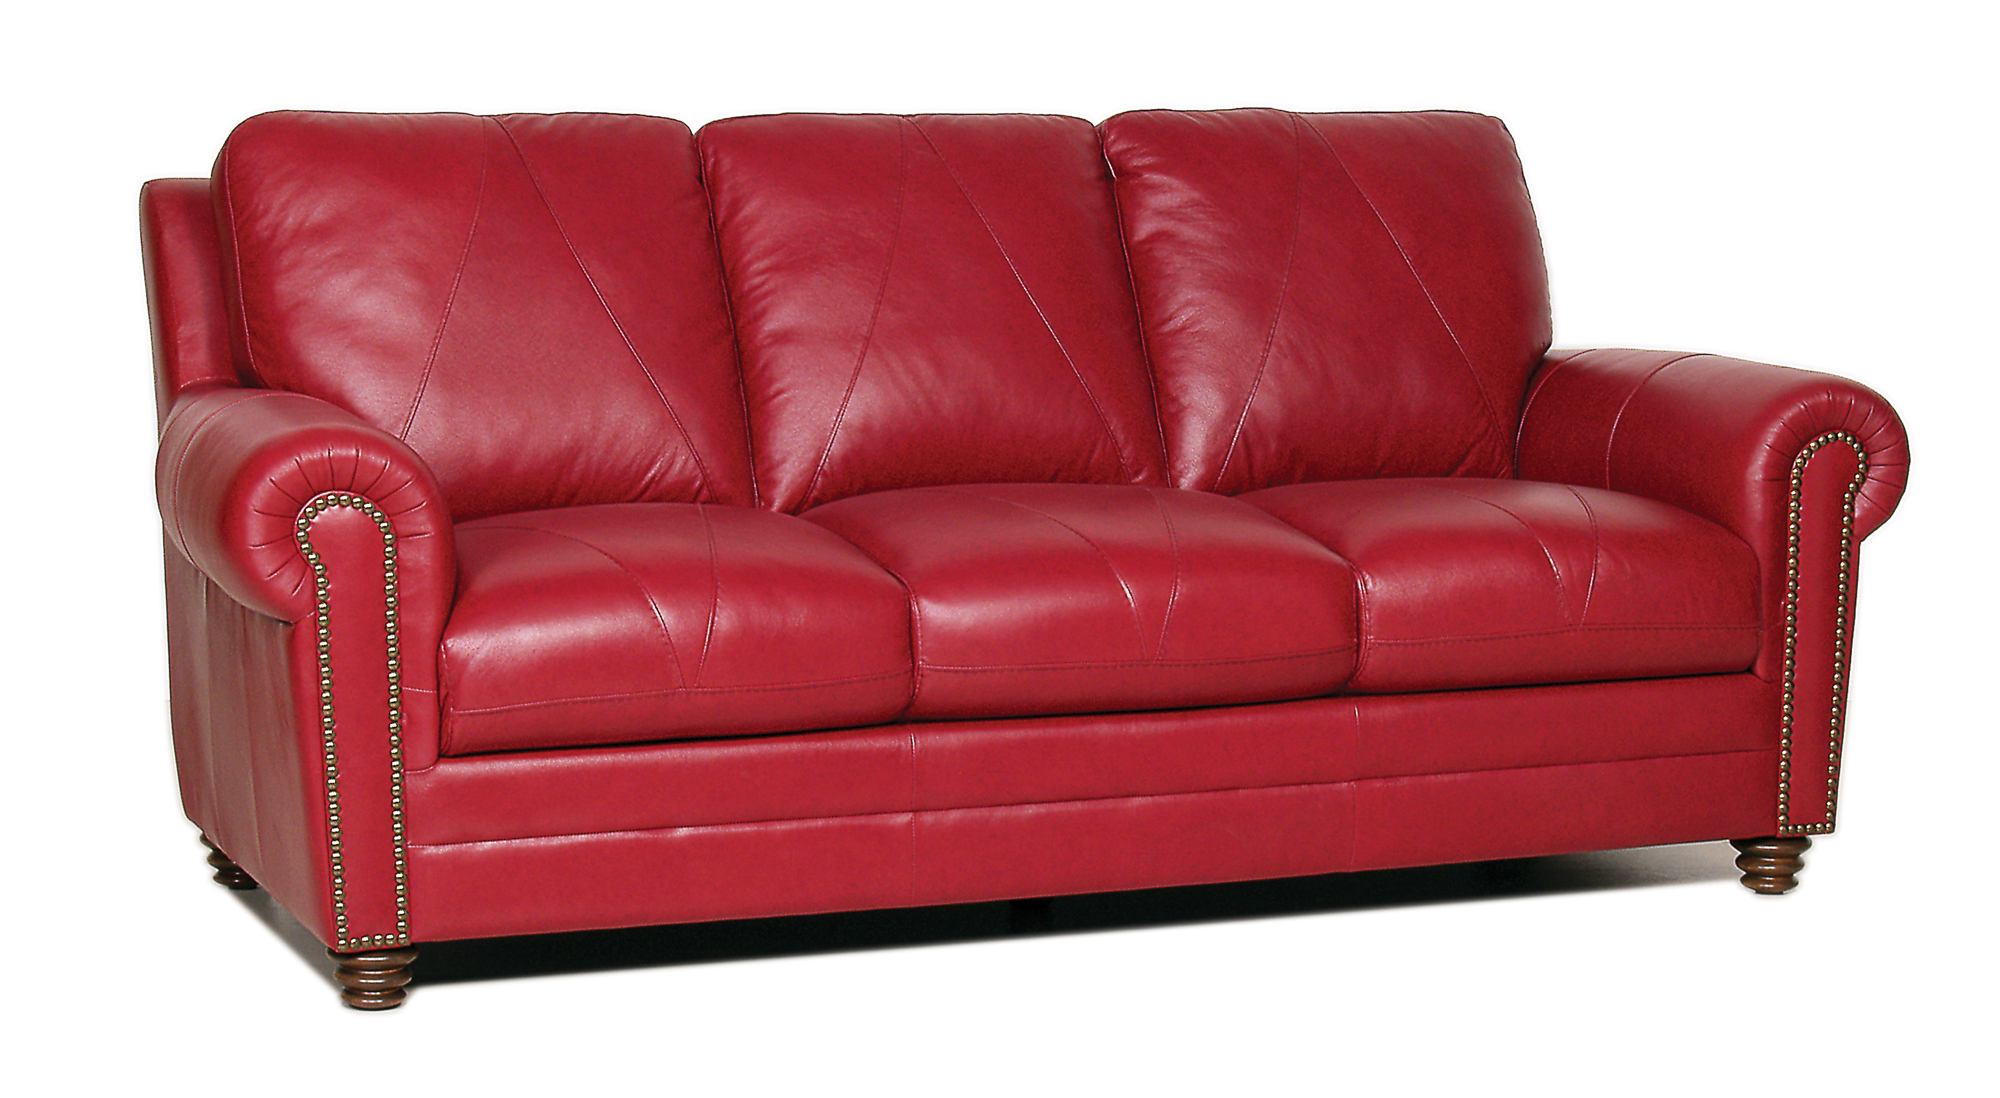 red leather sectional deals on 1001 blocks. Black Bedroom Furniture Sets. Home Design Ideas